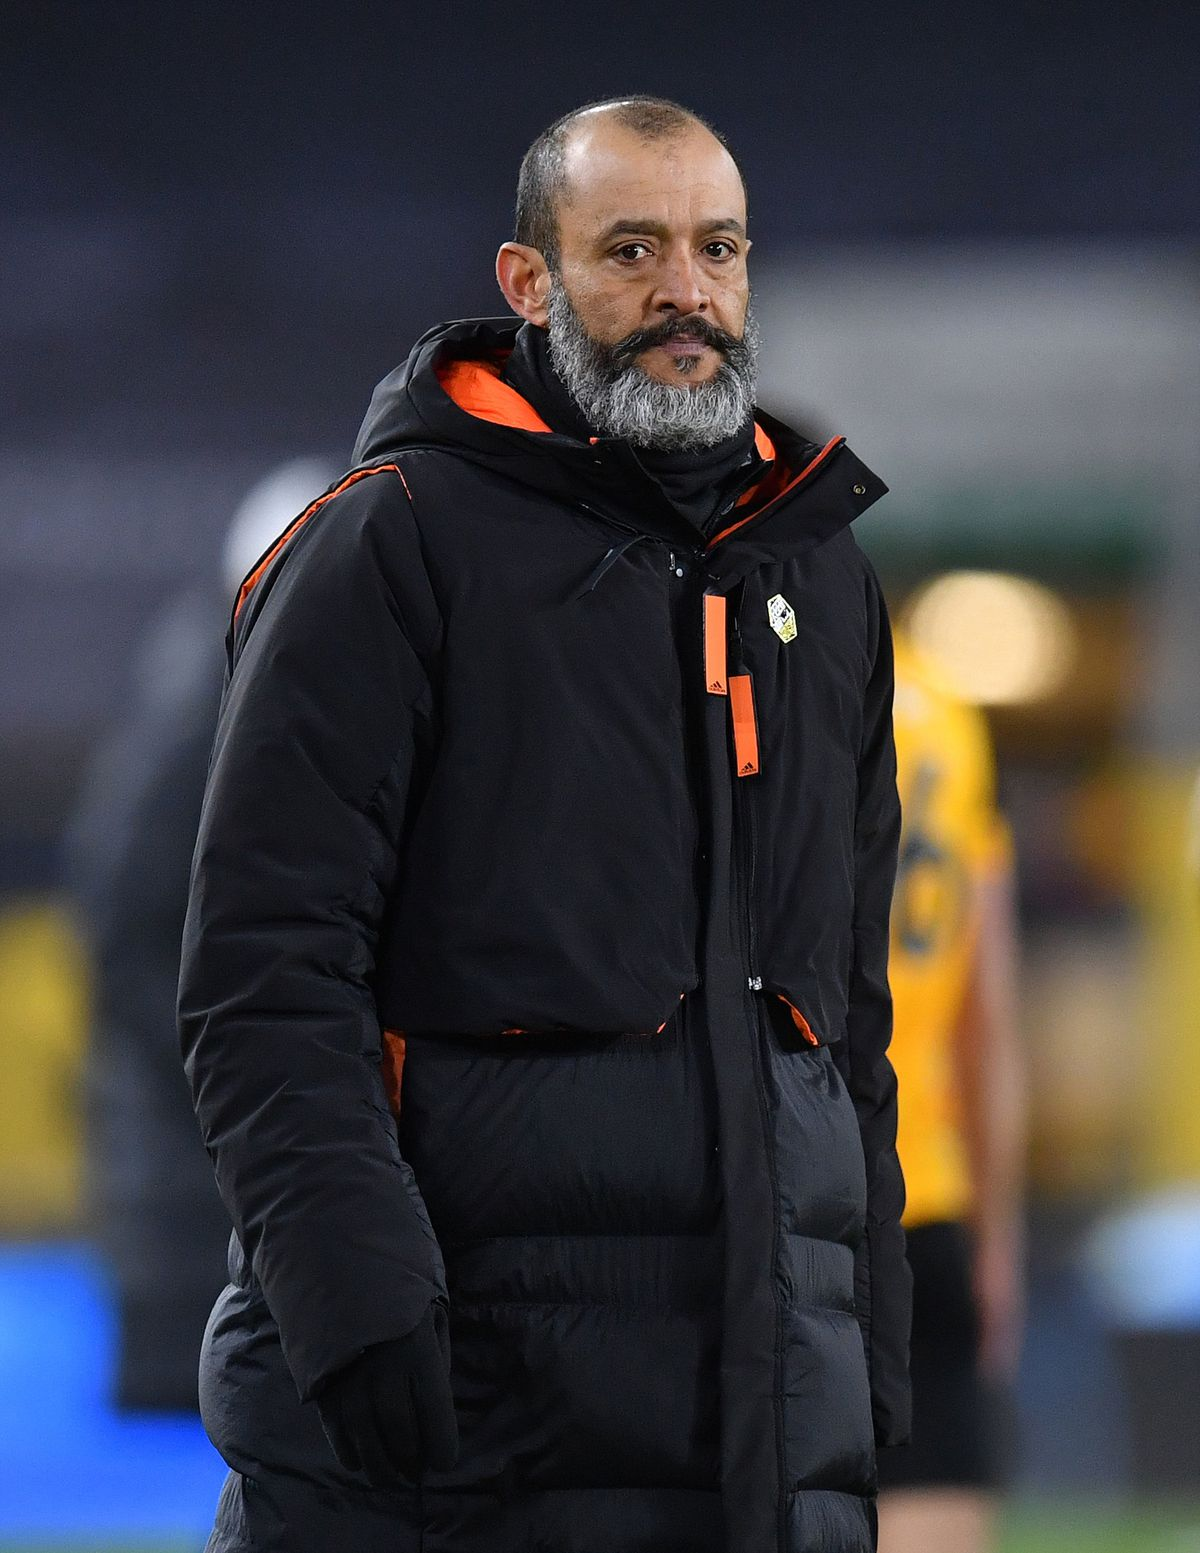 """Wolverhampton Wanderers manager Nuno Espirito Santo after the Premier League match at Molineux Stadium, Wolverhampton. Picture date: Monday March 15, 2021. PA Photo. See PA story SOCCER Wolves. Photo credit should read: Paul Ellis/PA Wire.   RESTRICTIONS: EDITORIAL USE ONLY No use with  unauthorised audio, video, data, fixture lists, club/league logos or """"live"""" services. Online in-match use limited to 120 images, no video emulation. No use in betting, games or single club/league/player publications."""